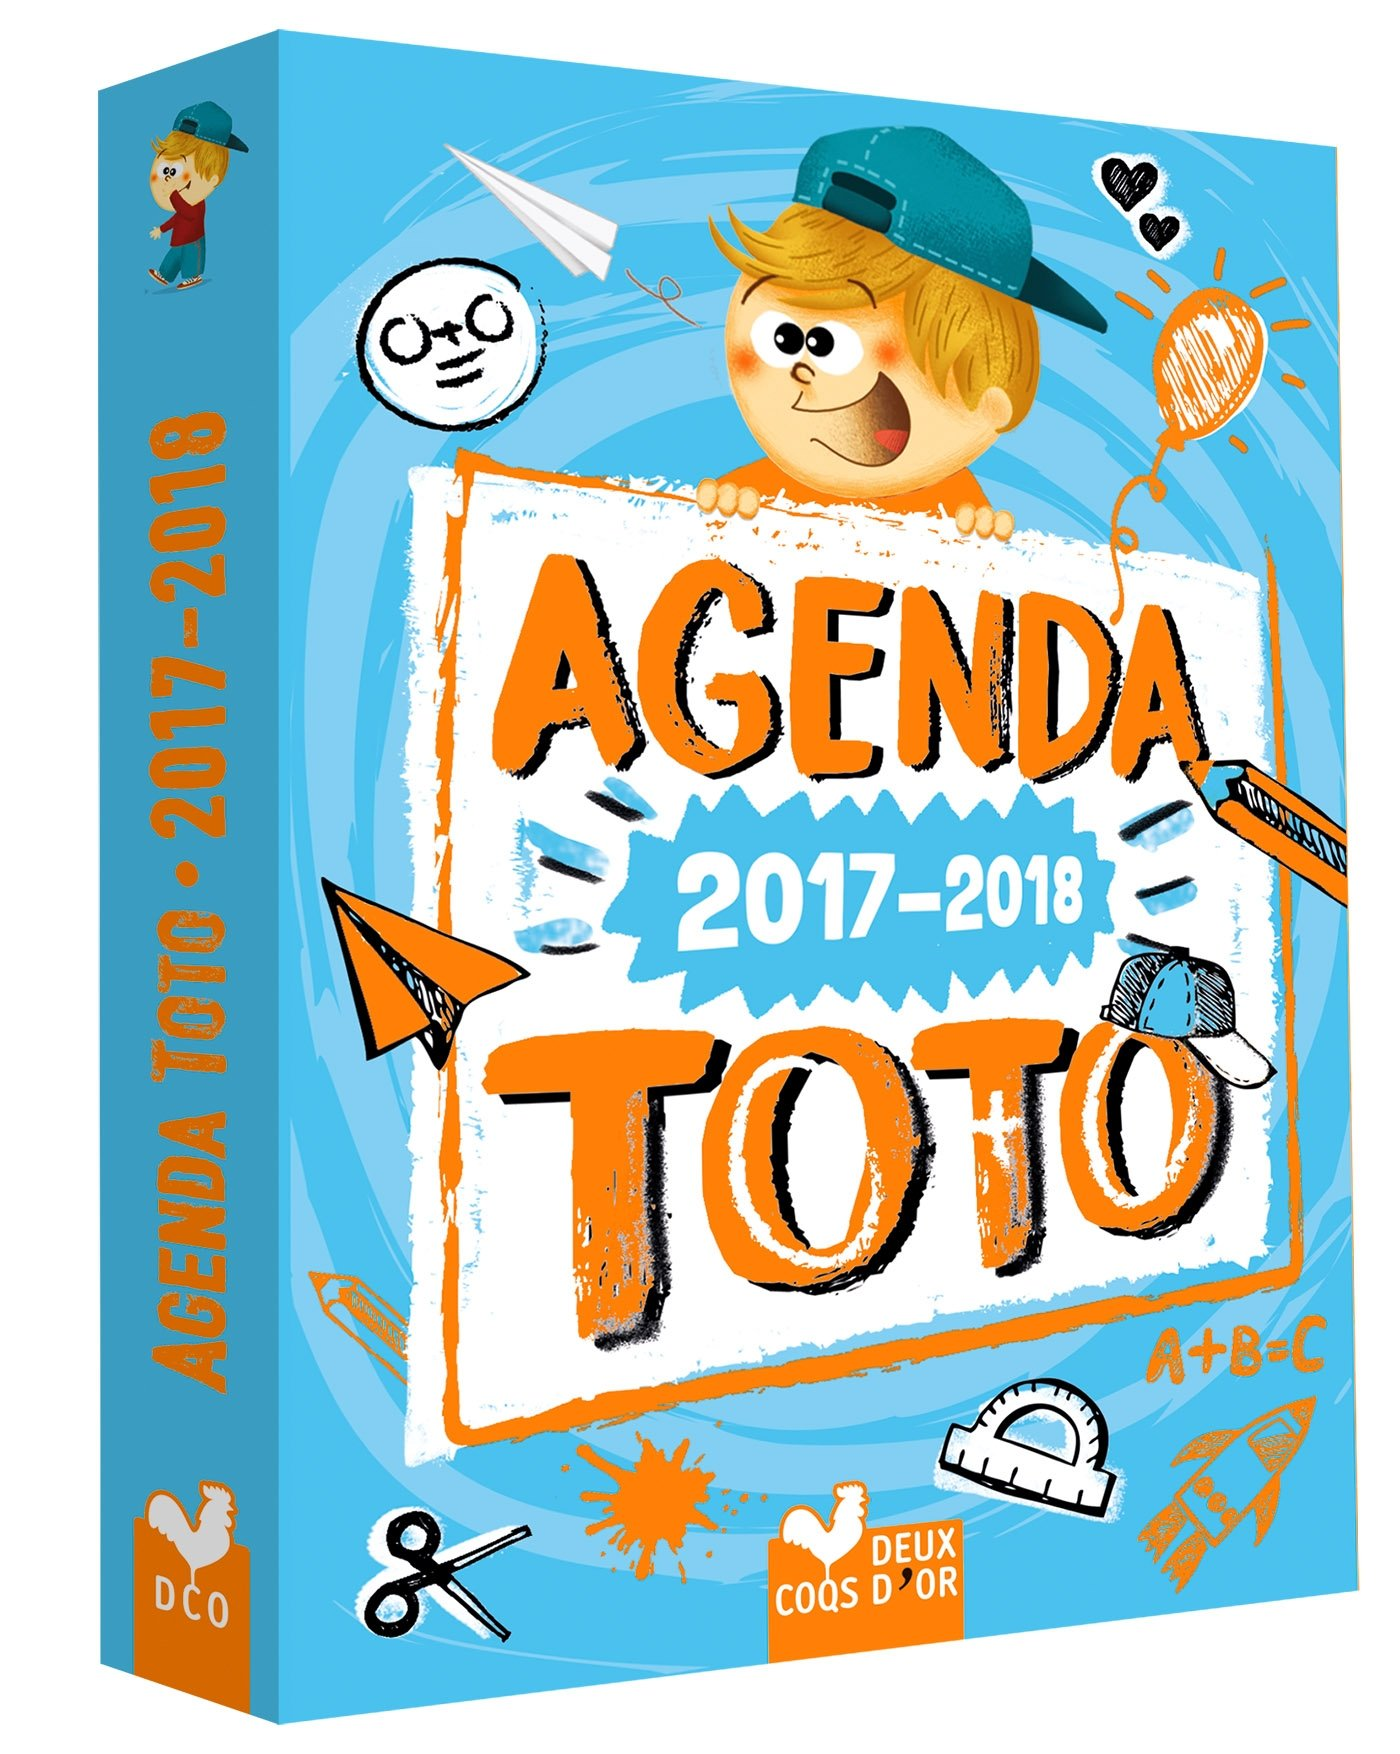 Agenda 2017-2018 Toto: 9782017028987: Amazon.com: Books